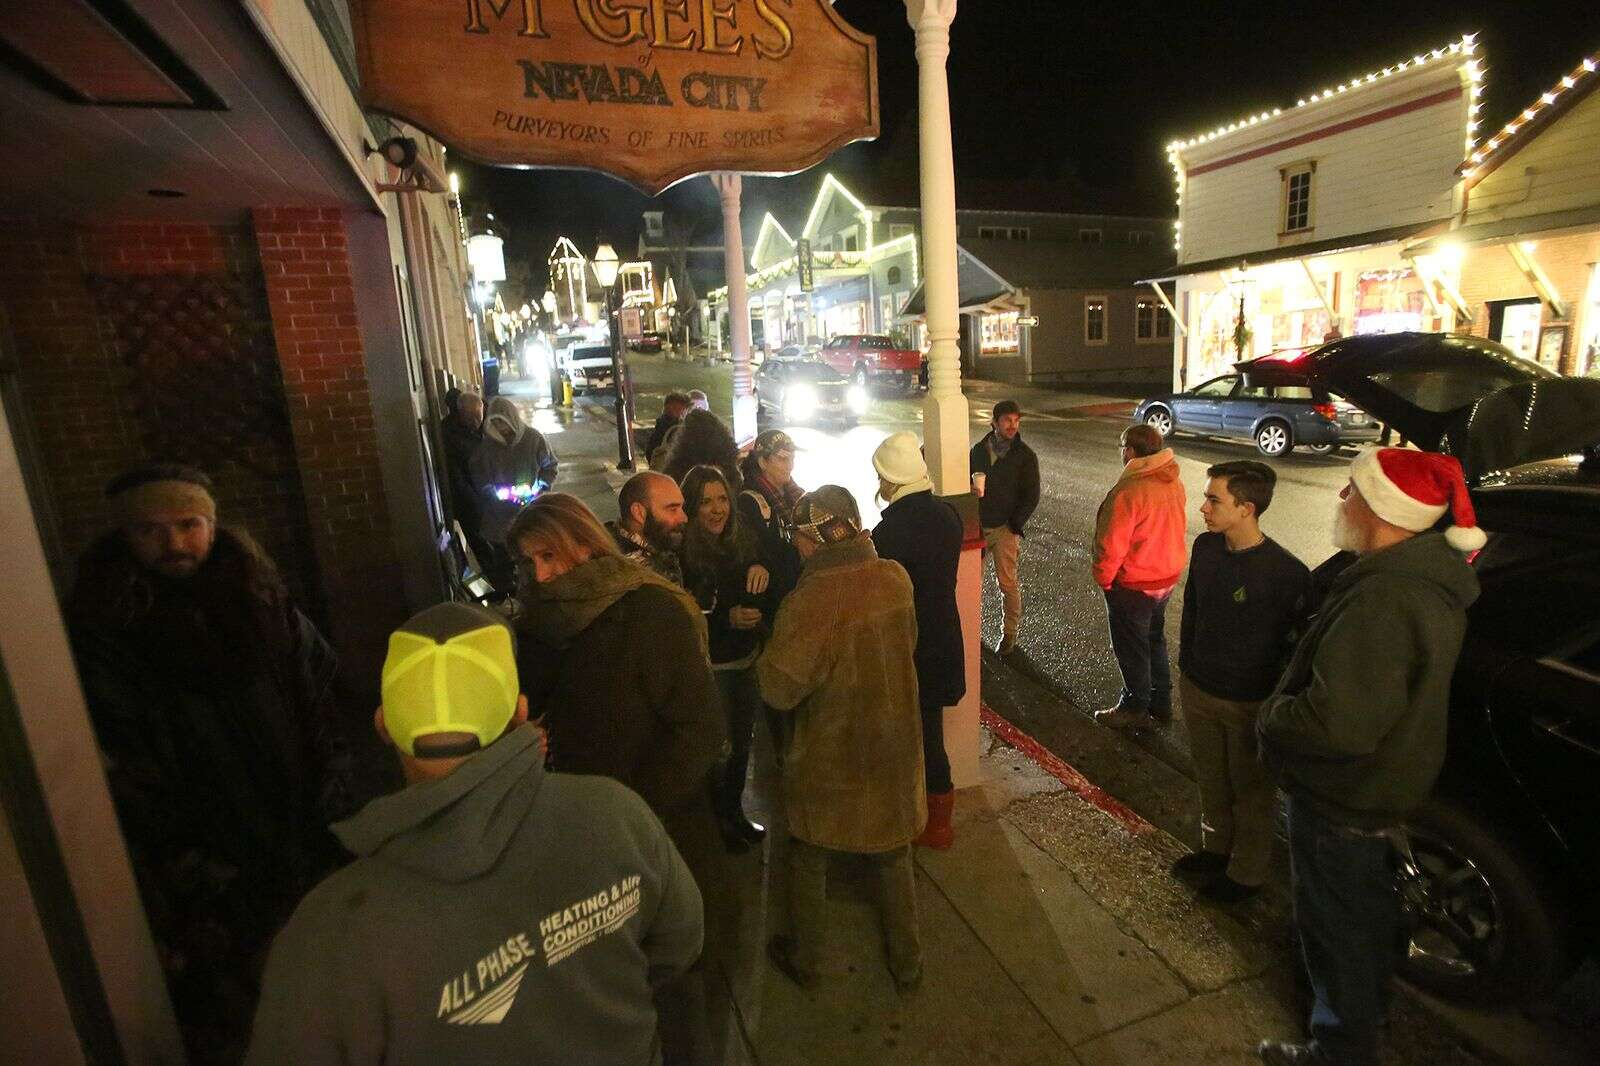 People gather under the awning in front of McGee's in Nevada City, where a few dozen attendees to the Nevada City Revival gathered to protest the regional stay at home orders.   Elias Funez